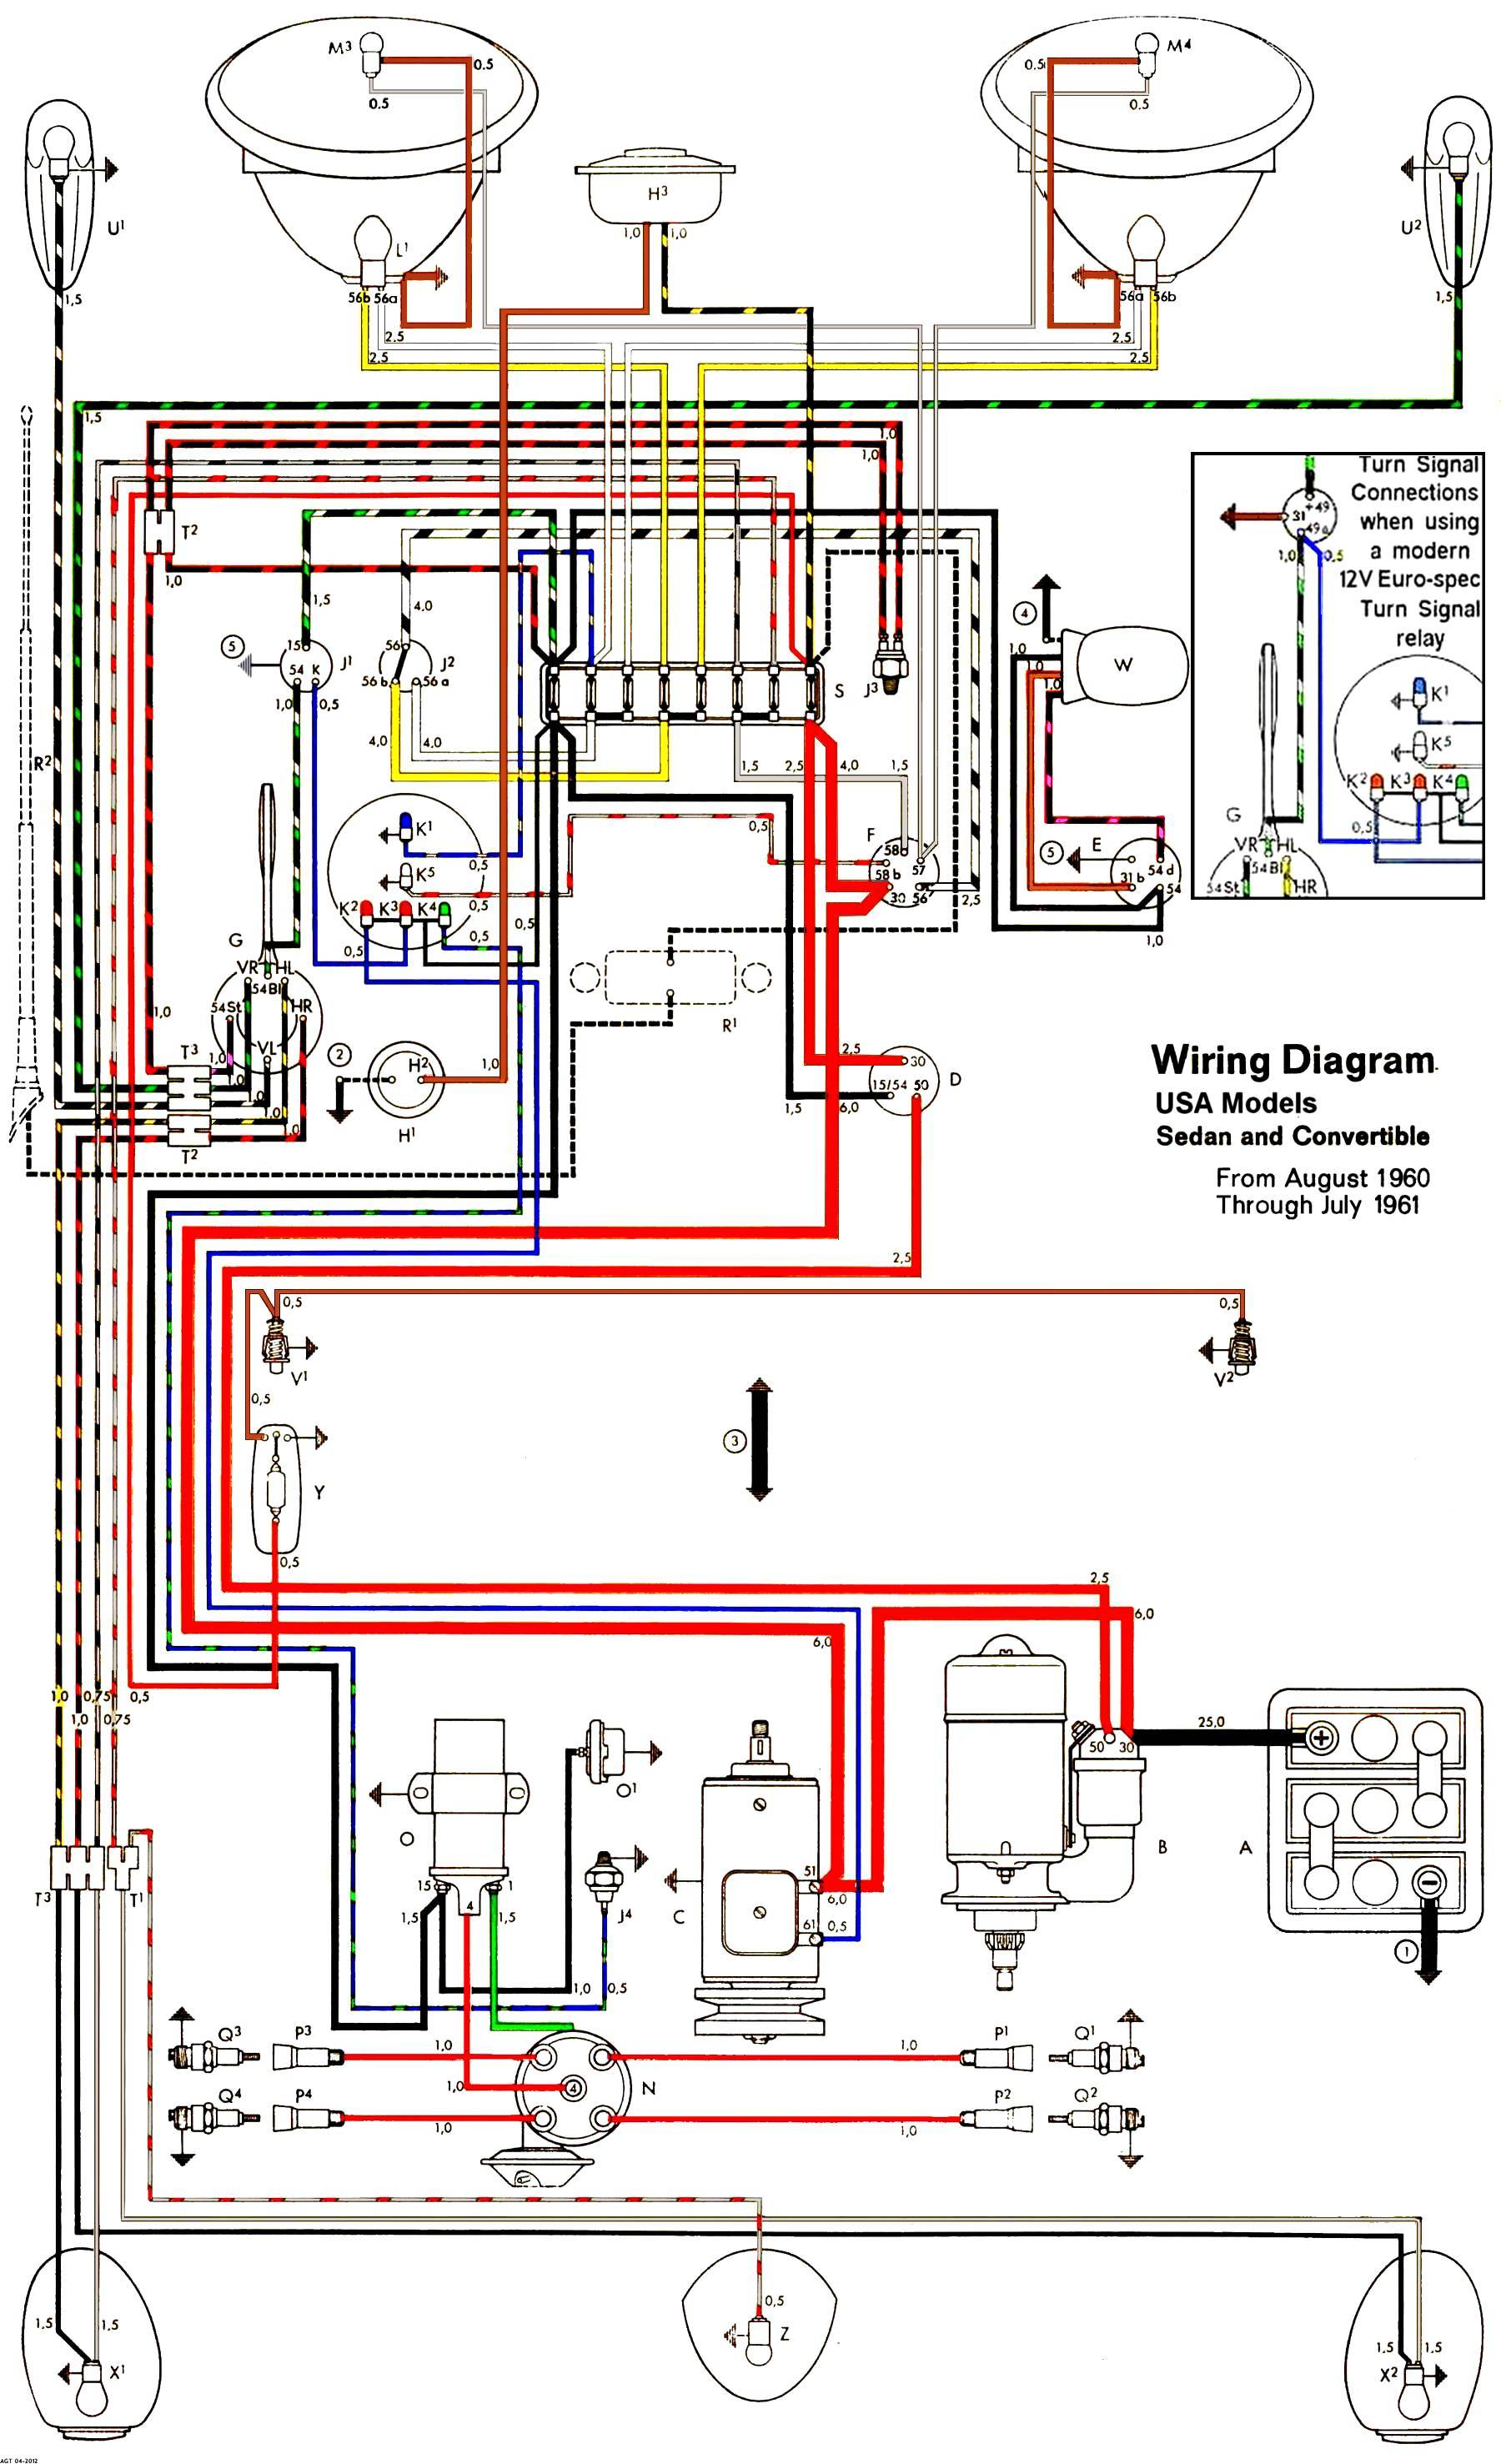 thesamba com type 1 wiring diagrams rh thesamba com 1970 vw wiring diagram VW Bus Wiring Diagram